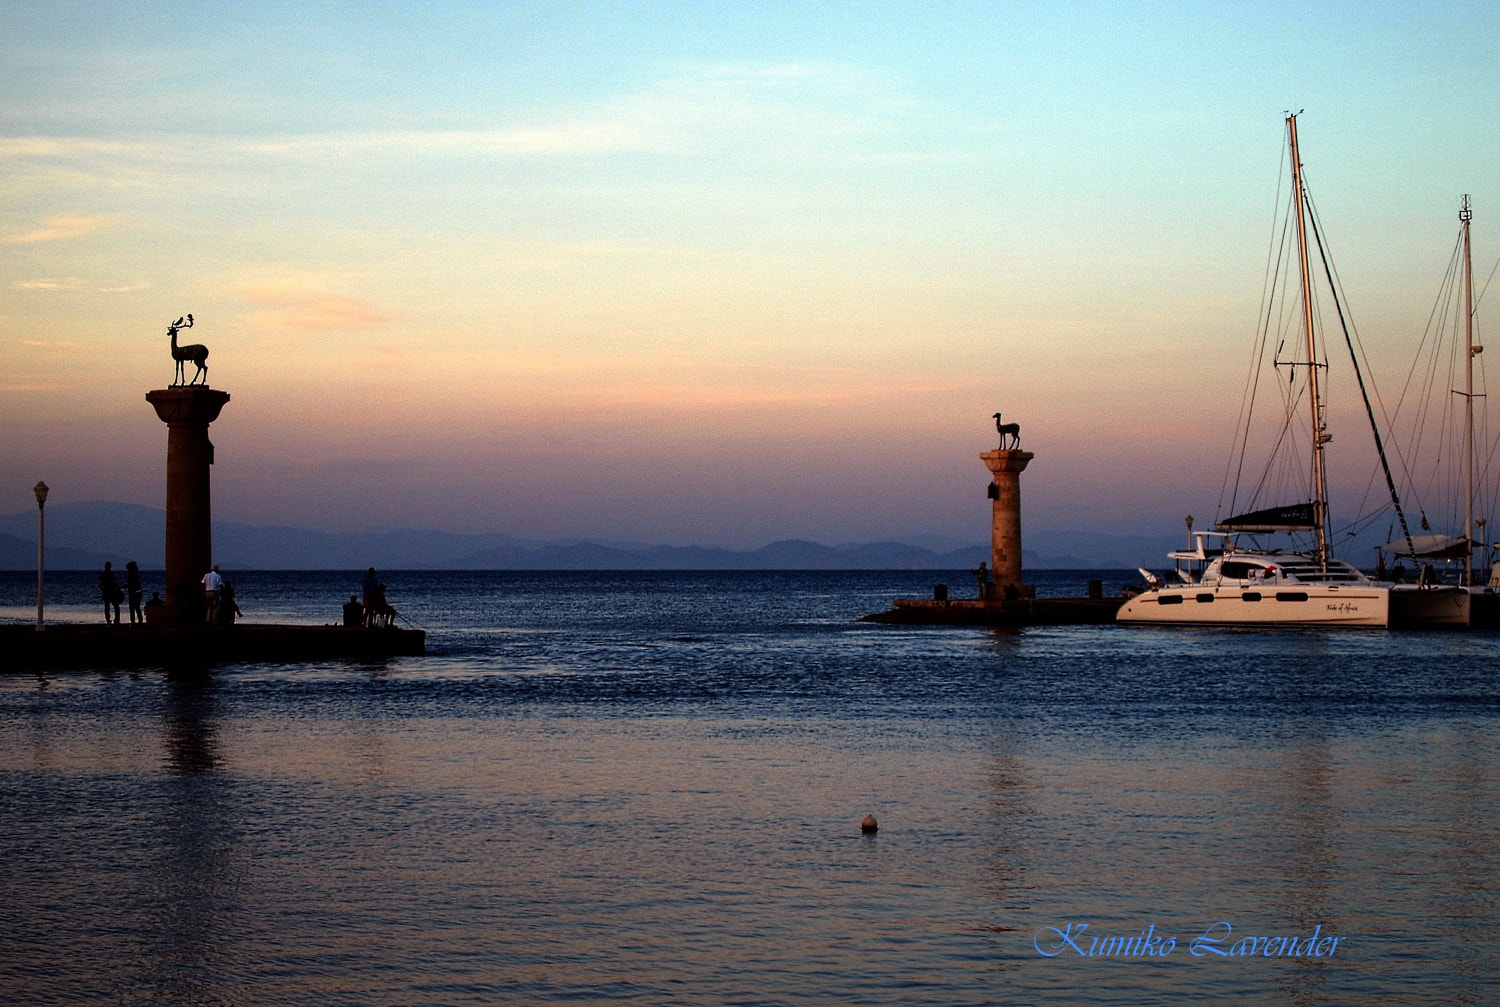 Photograph Twilight in Rhodes island by Kumiko  on 500px